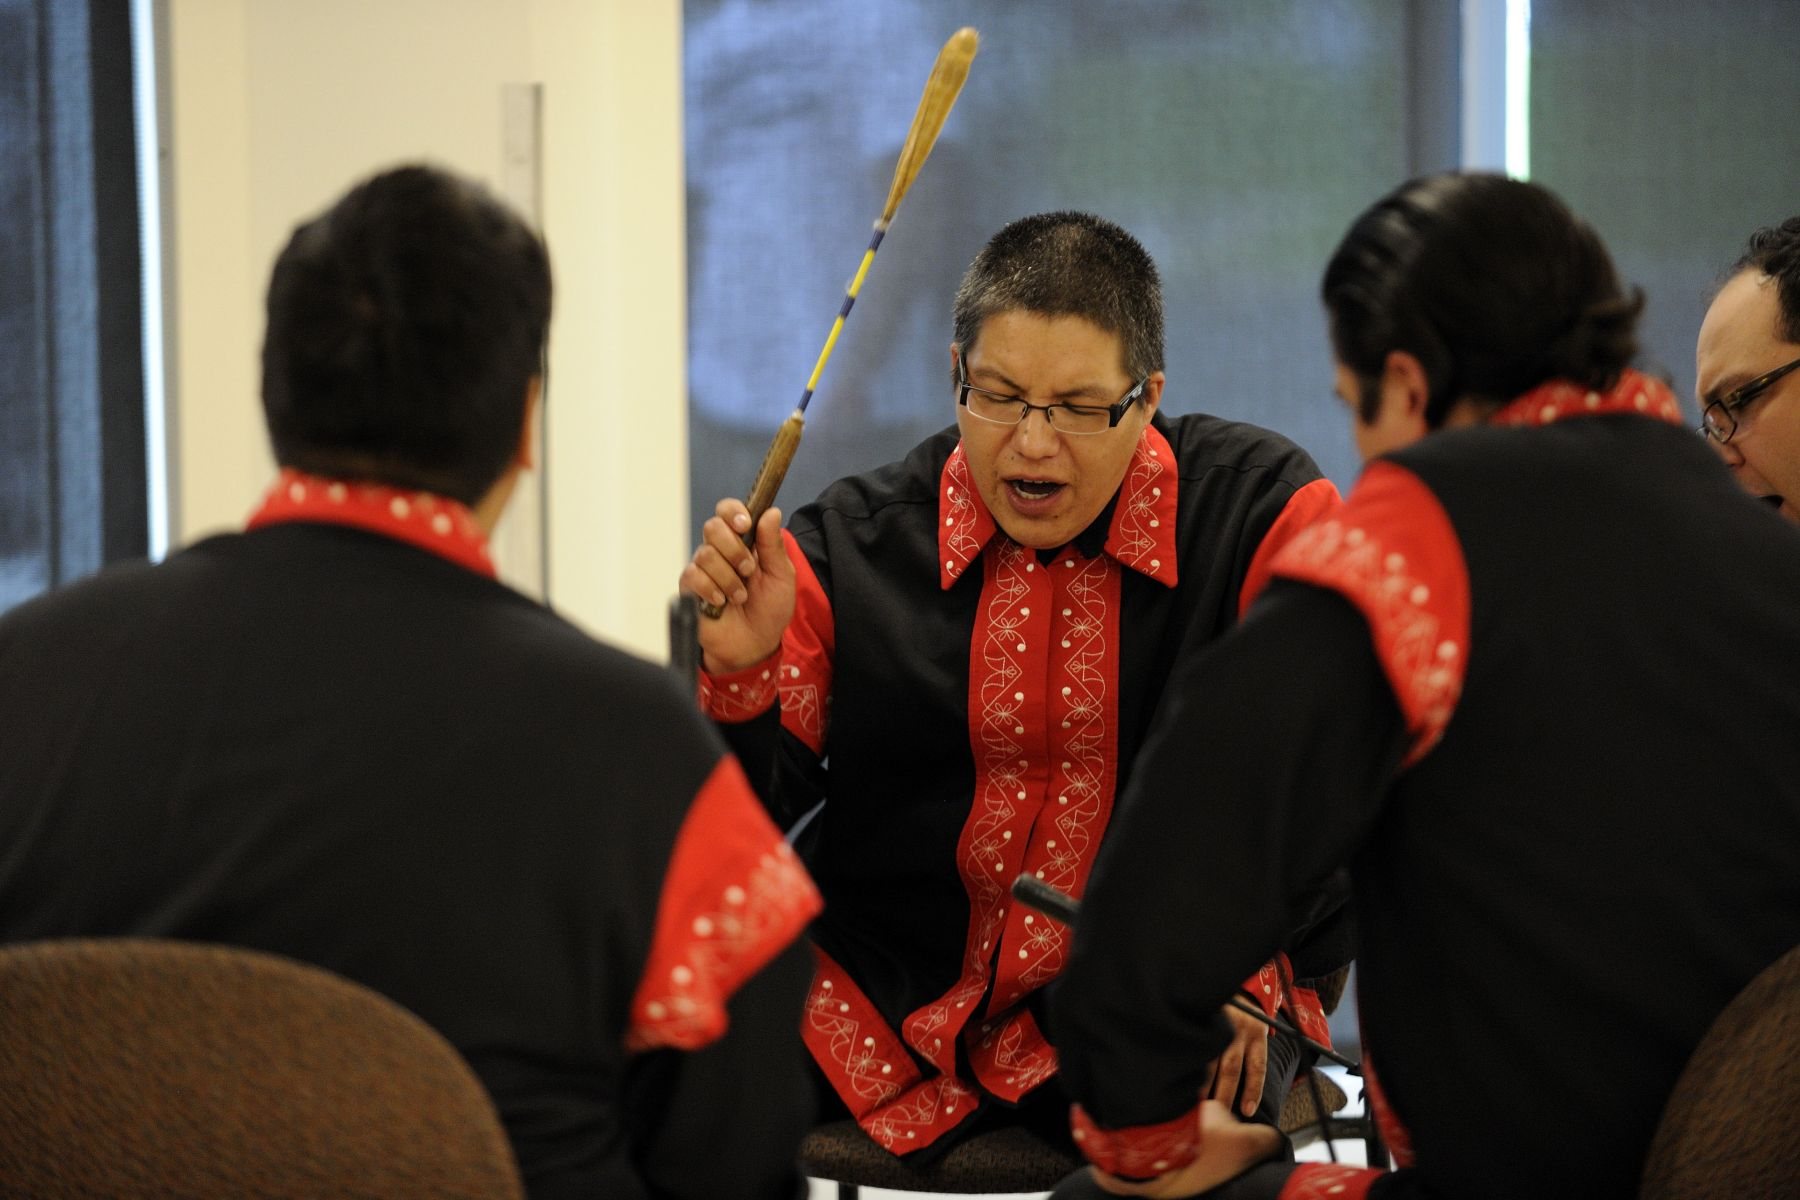 Their Excellencies listened to a Mi'kmaq honour song performed by the Sons of Membertou.